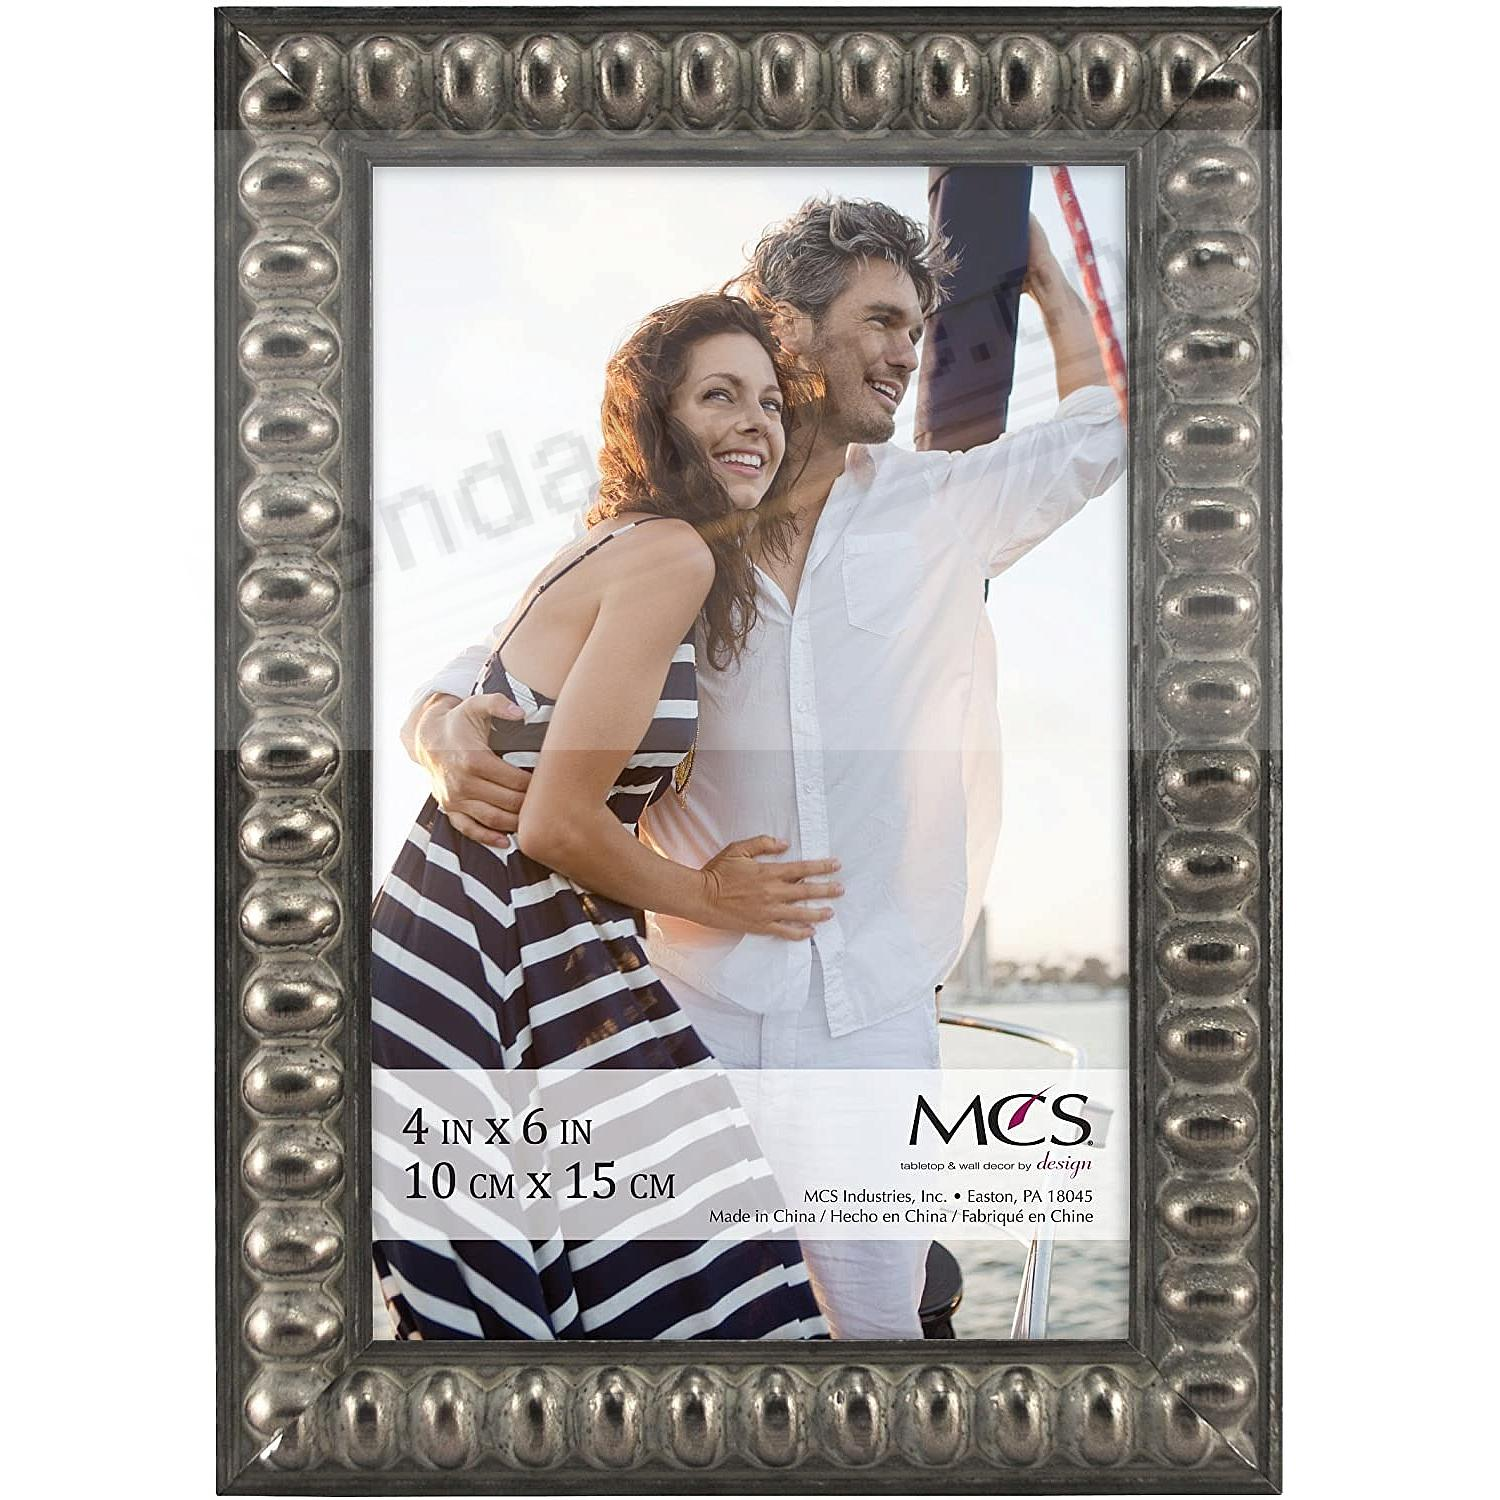 THIN BEAD Wood Pewter frame 4x6 by MCS®